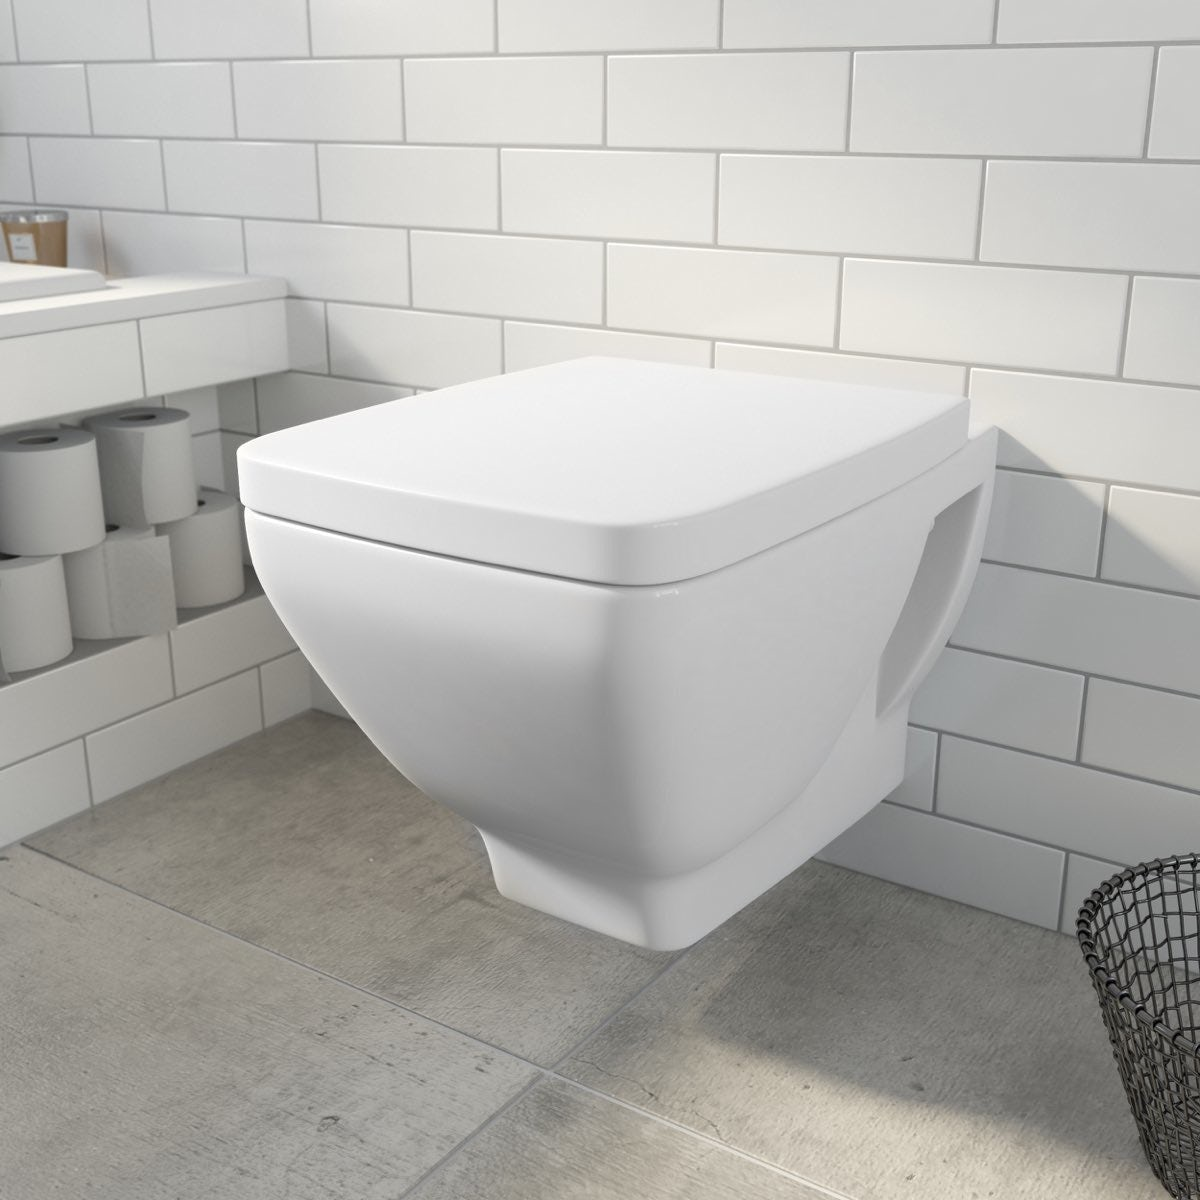 Verso wall hung toilet with soft close seat